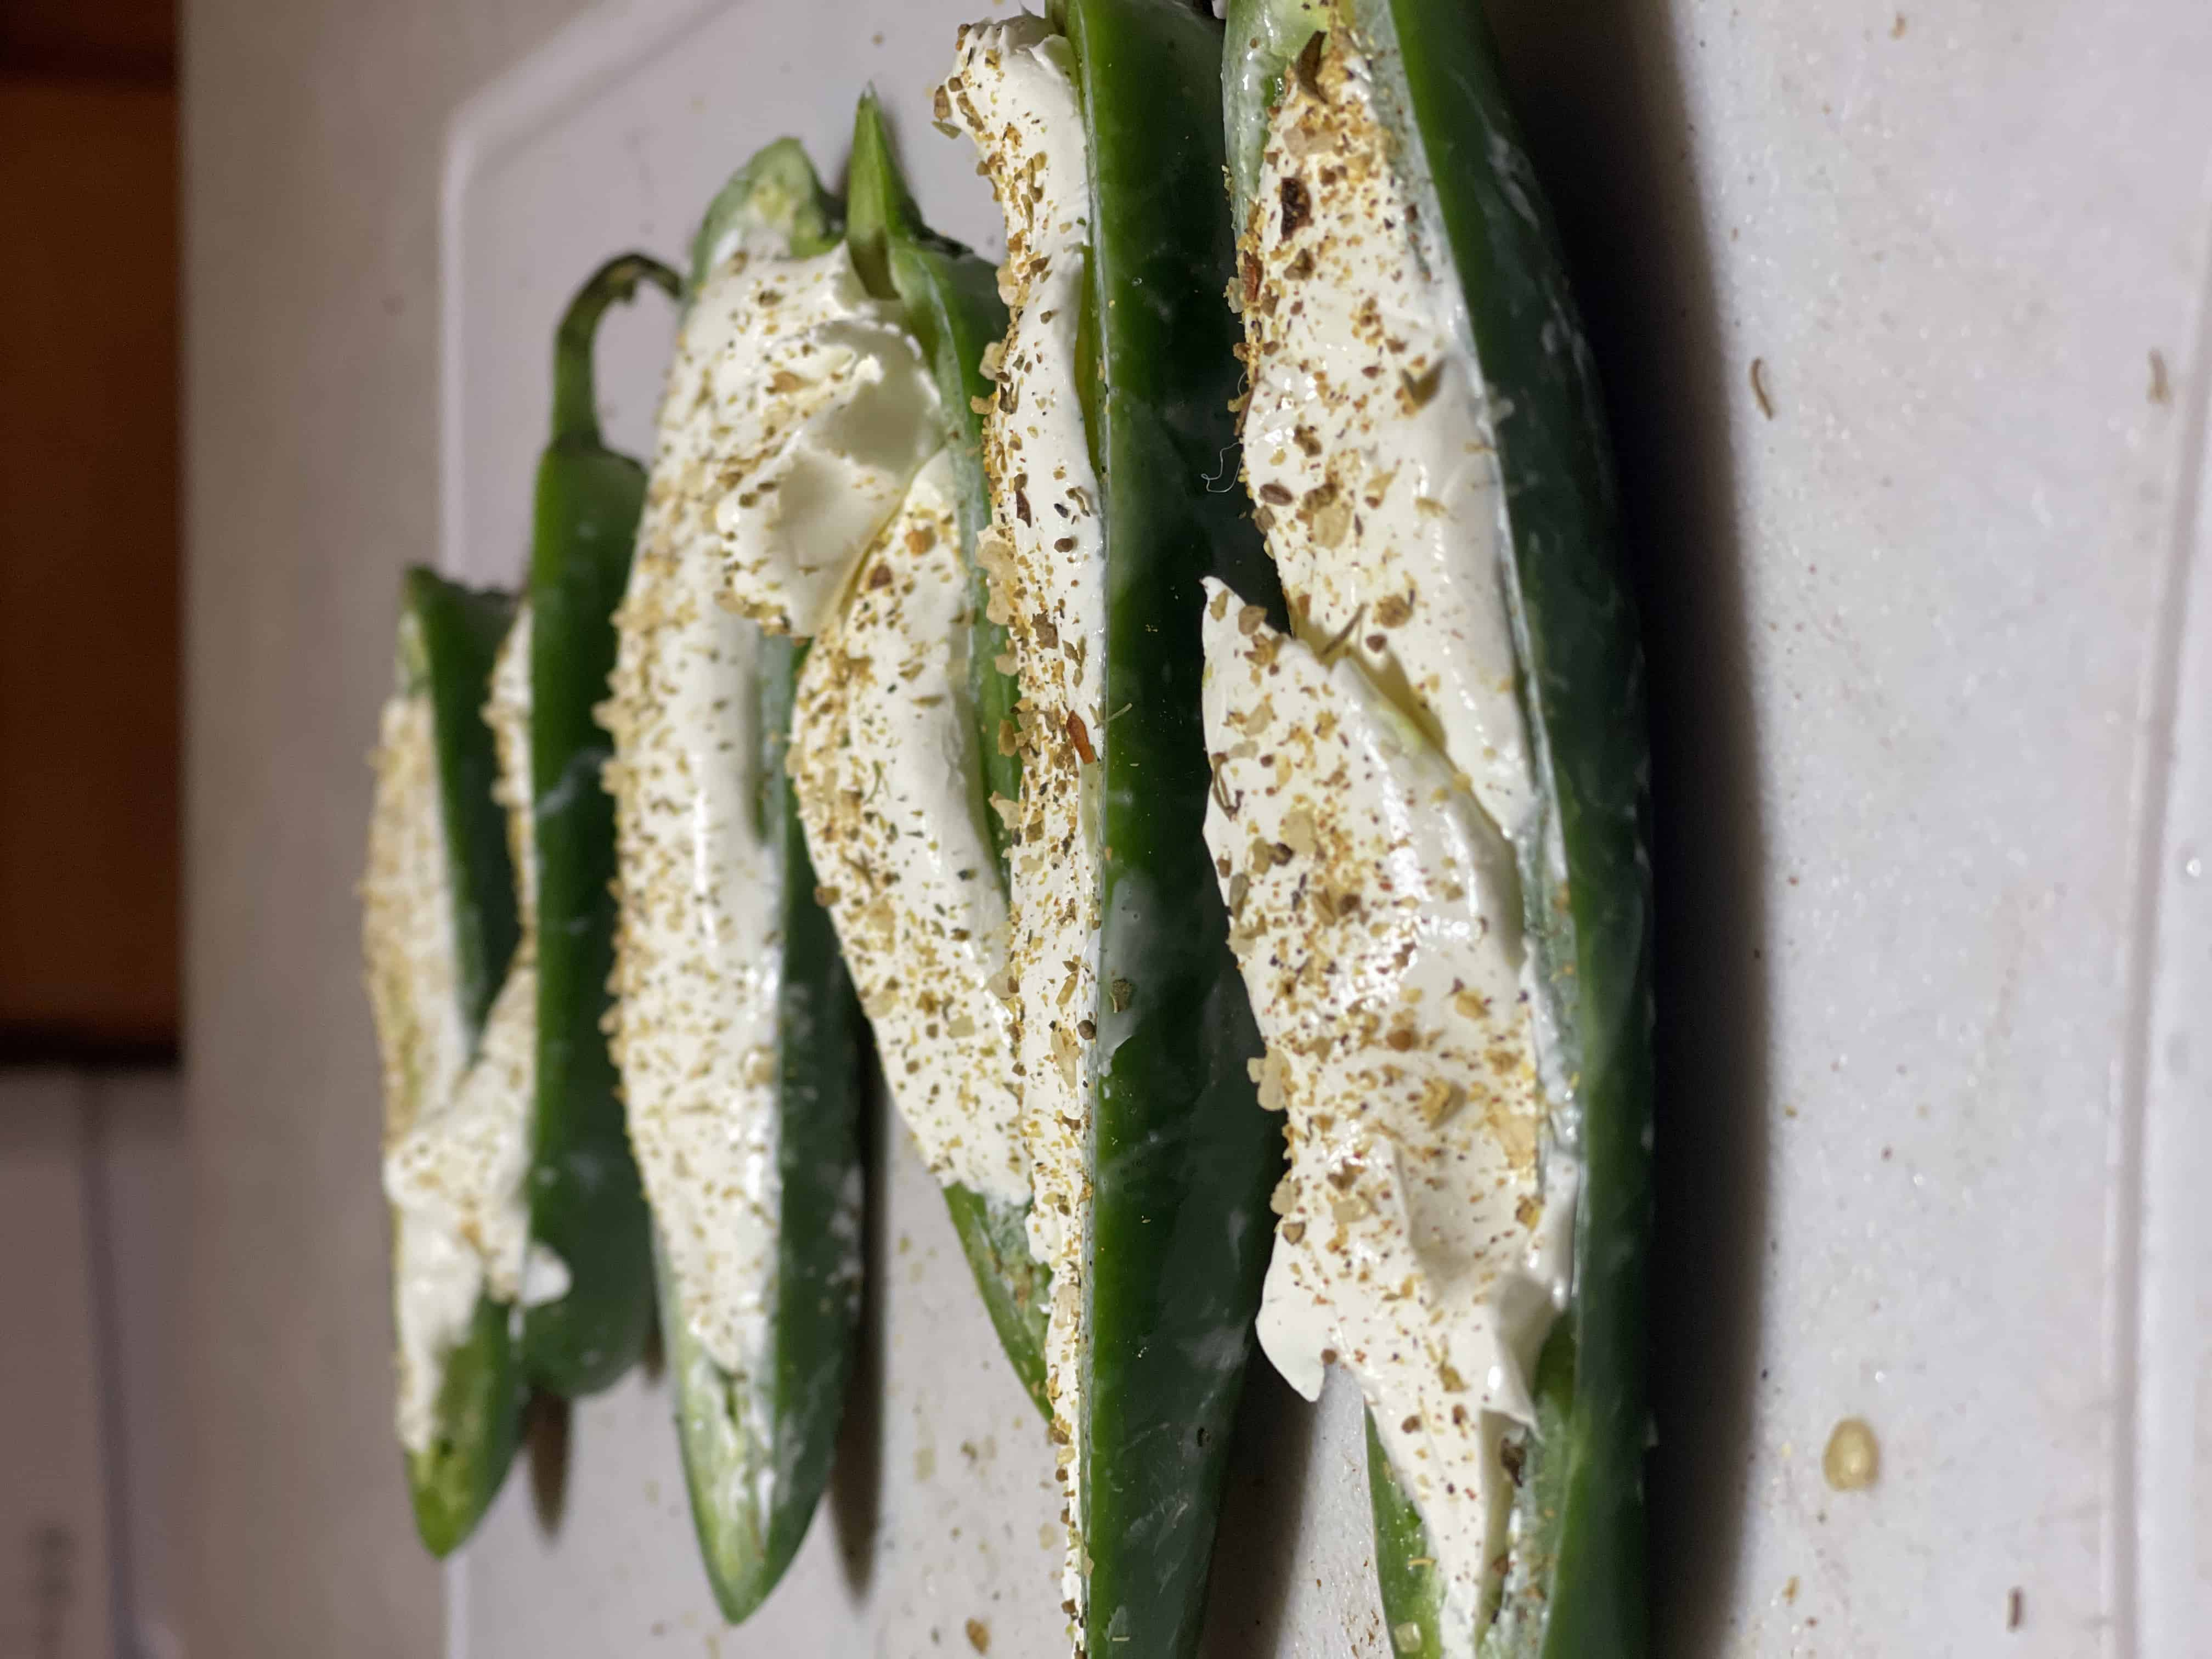 jalapeno stuffed with cream cheese and coated with bbq seasoning